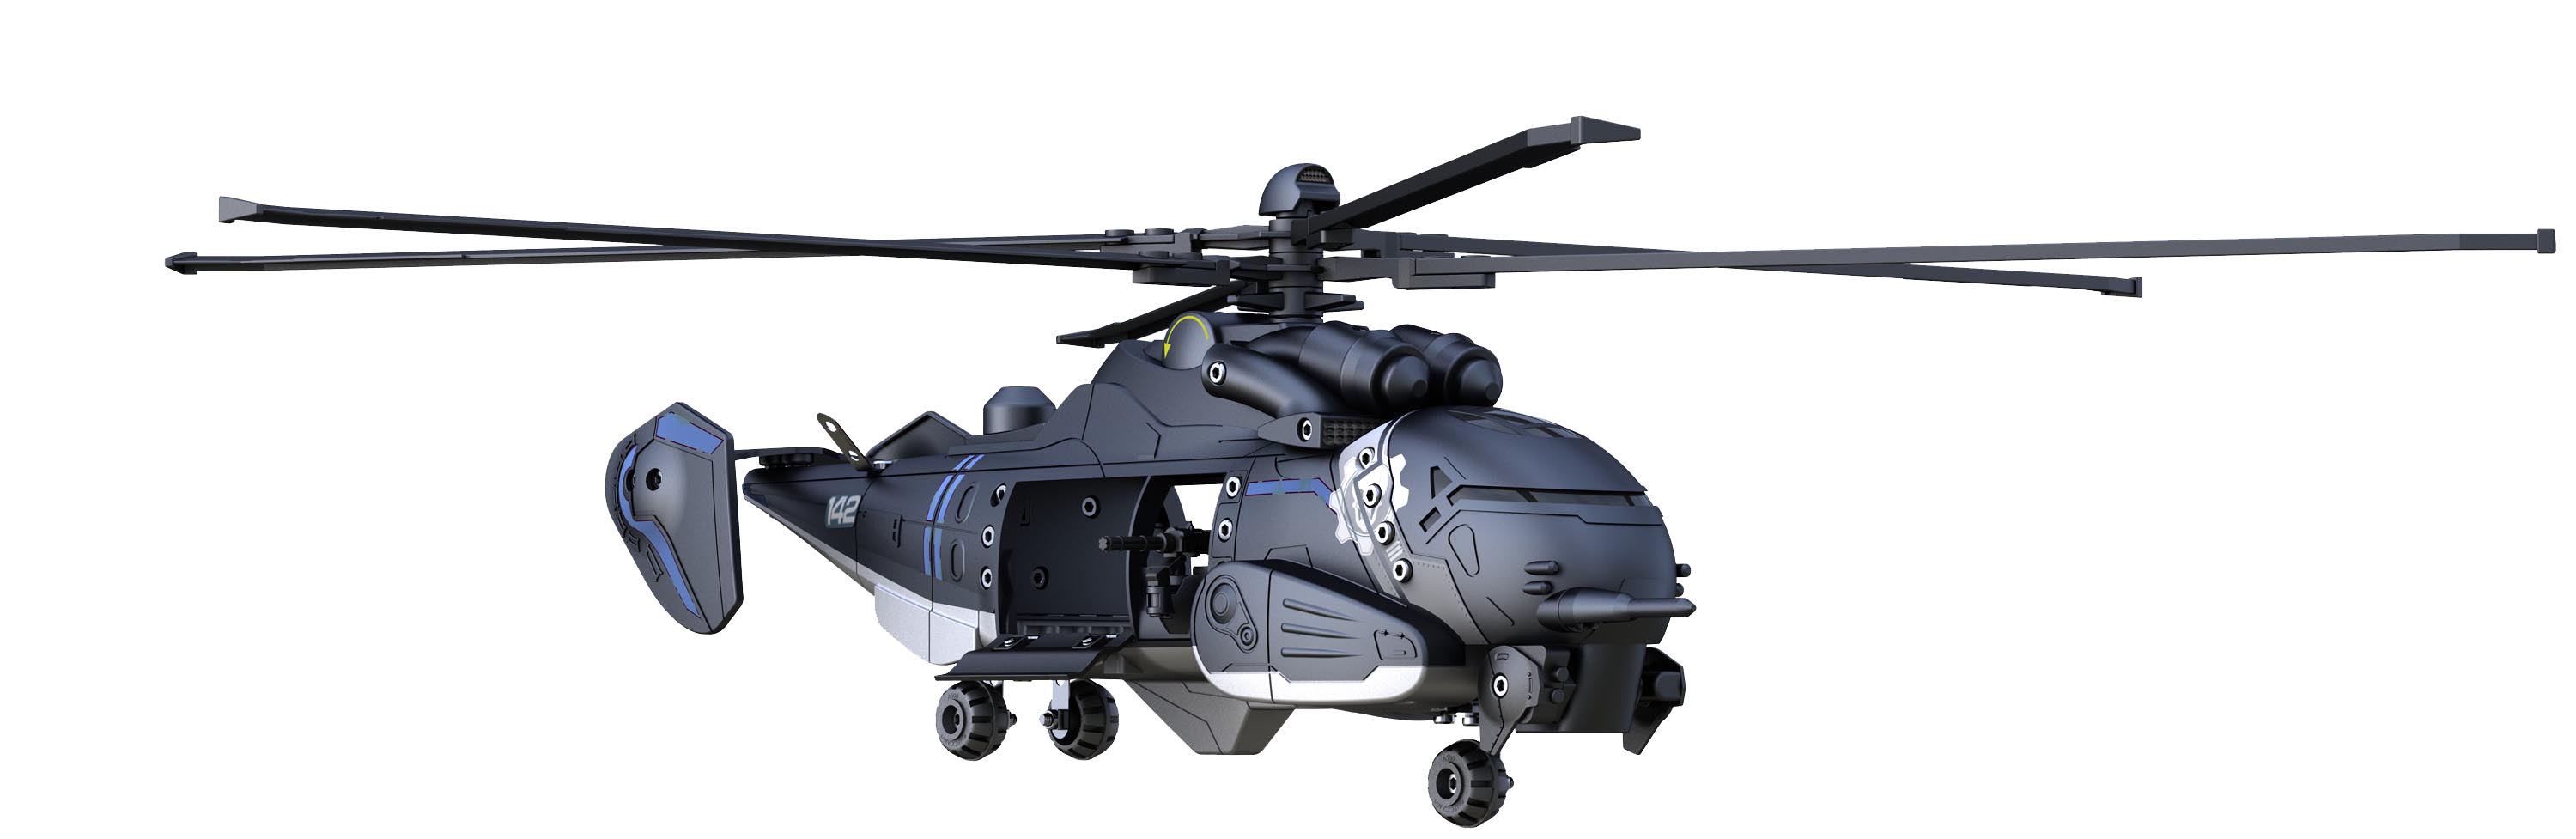 Download Vectors Icon Helicopter Free image #40866